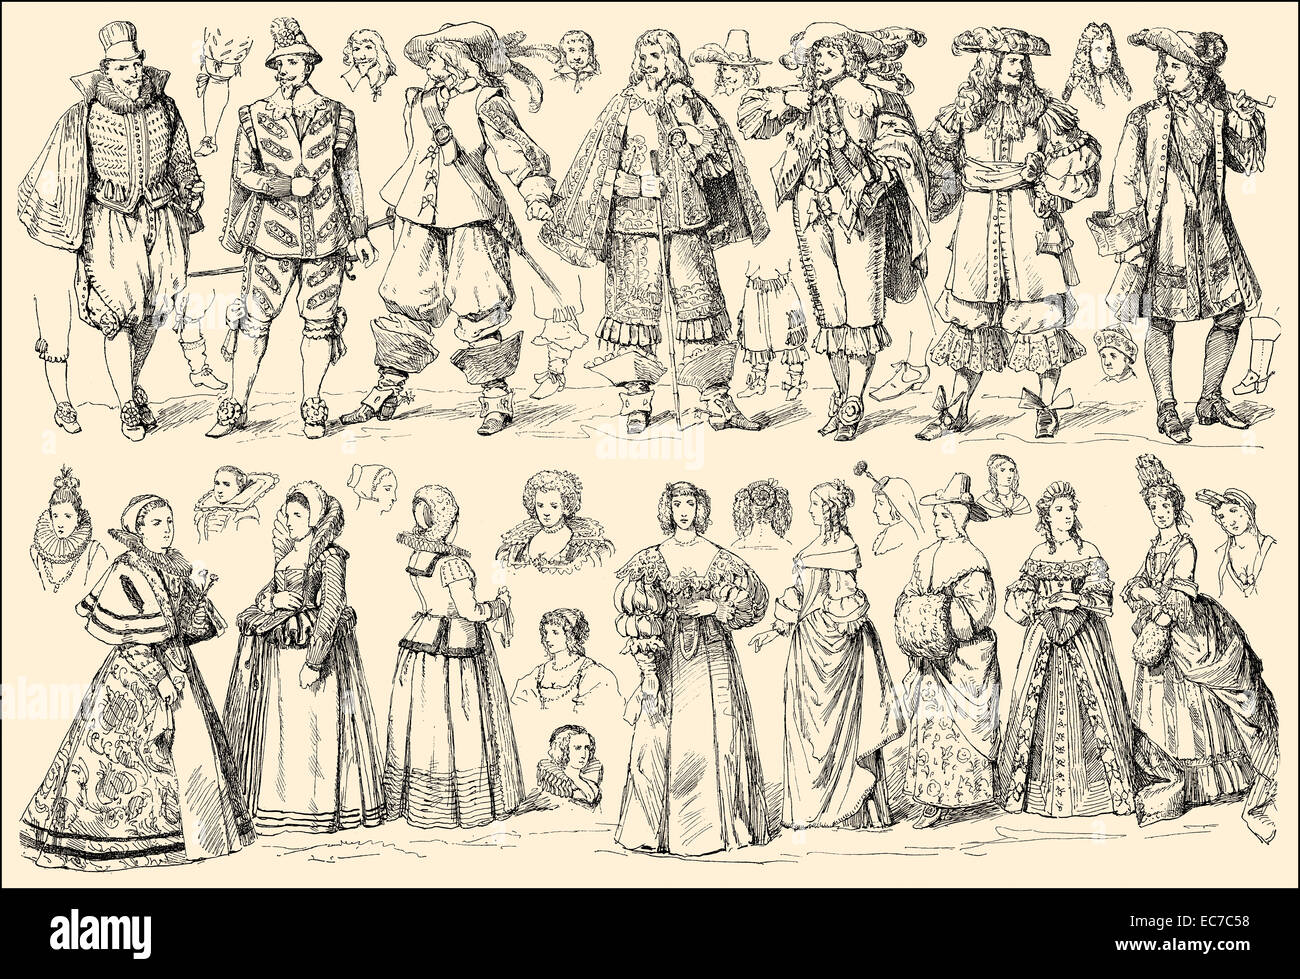 costumes of the 17th century, Germany - Stock Image